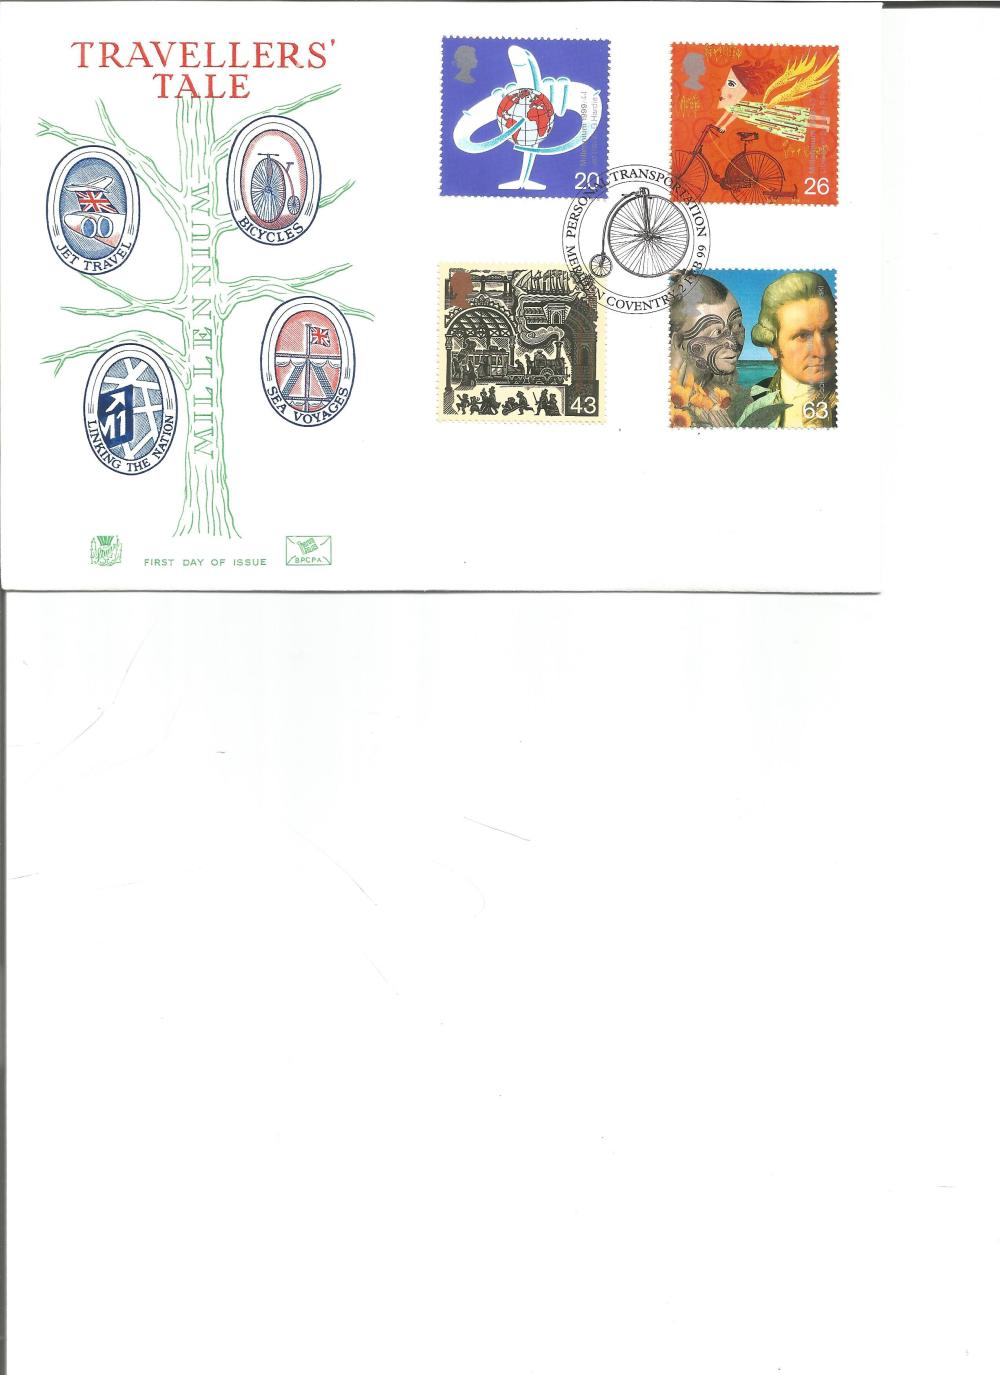 FDC Travellers Tale c/w set of four stamps PM Personal Transportation 2nd Feb 1999 Coventry. We